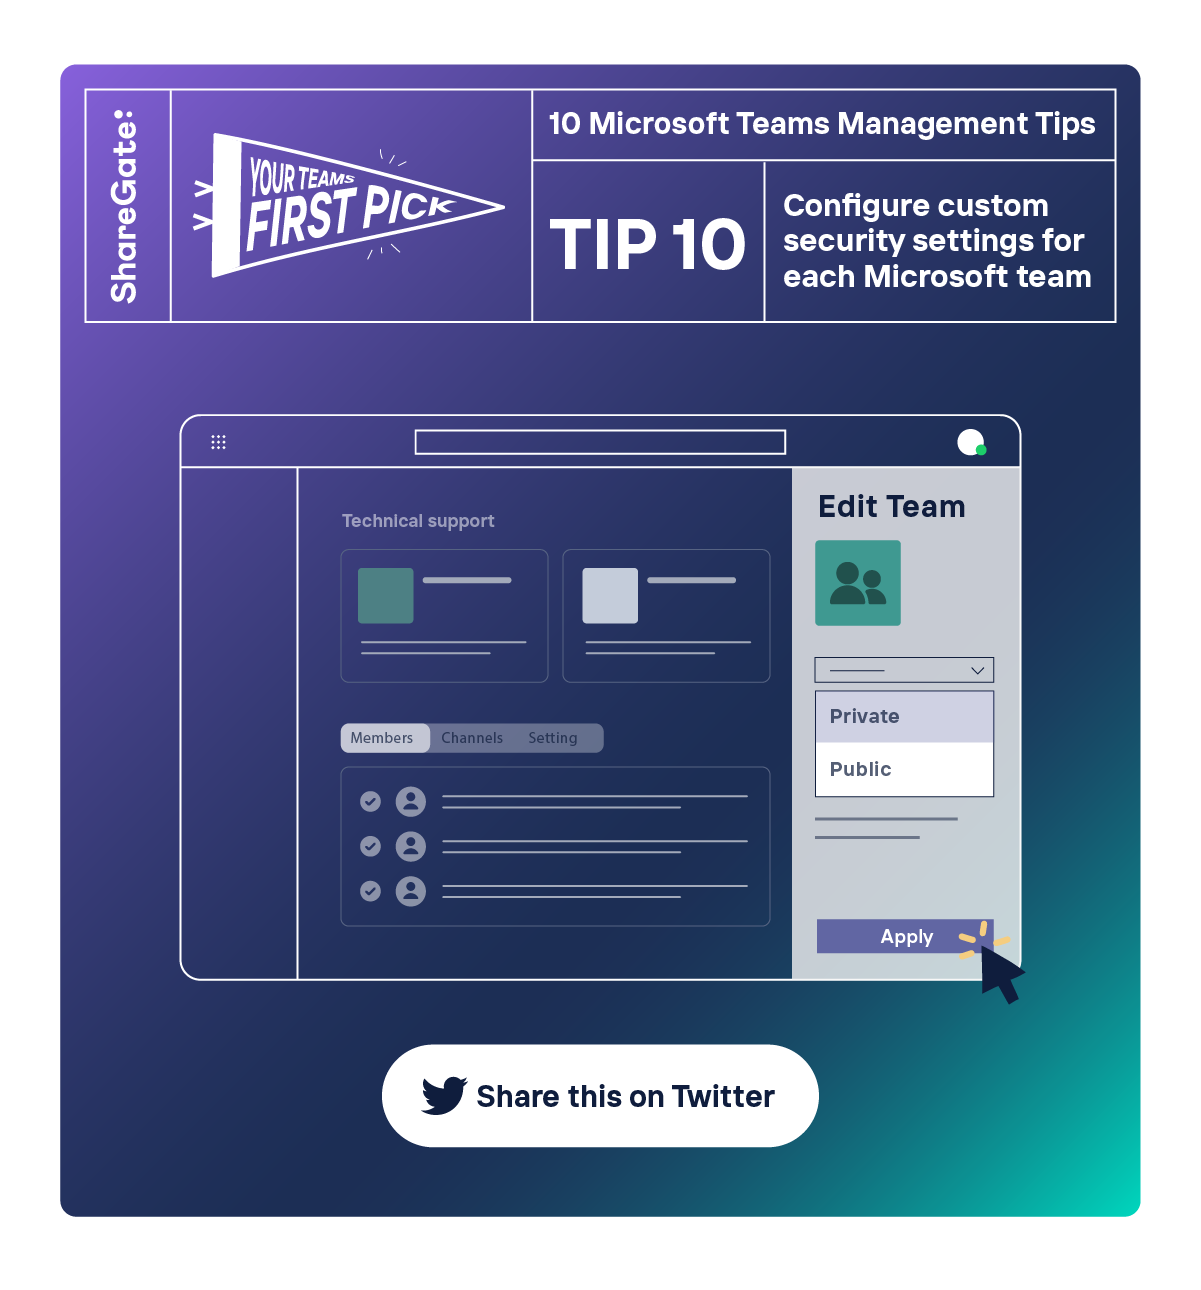 Illustrated infographic showing tip #10: Configure custom security settings for each Microsoft team.